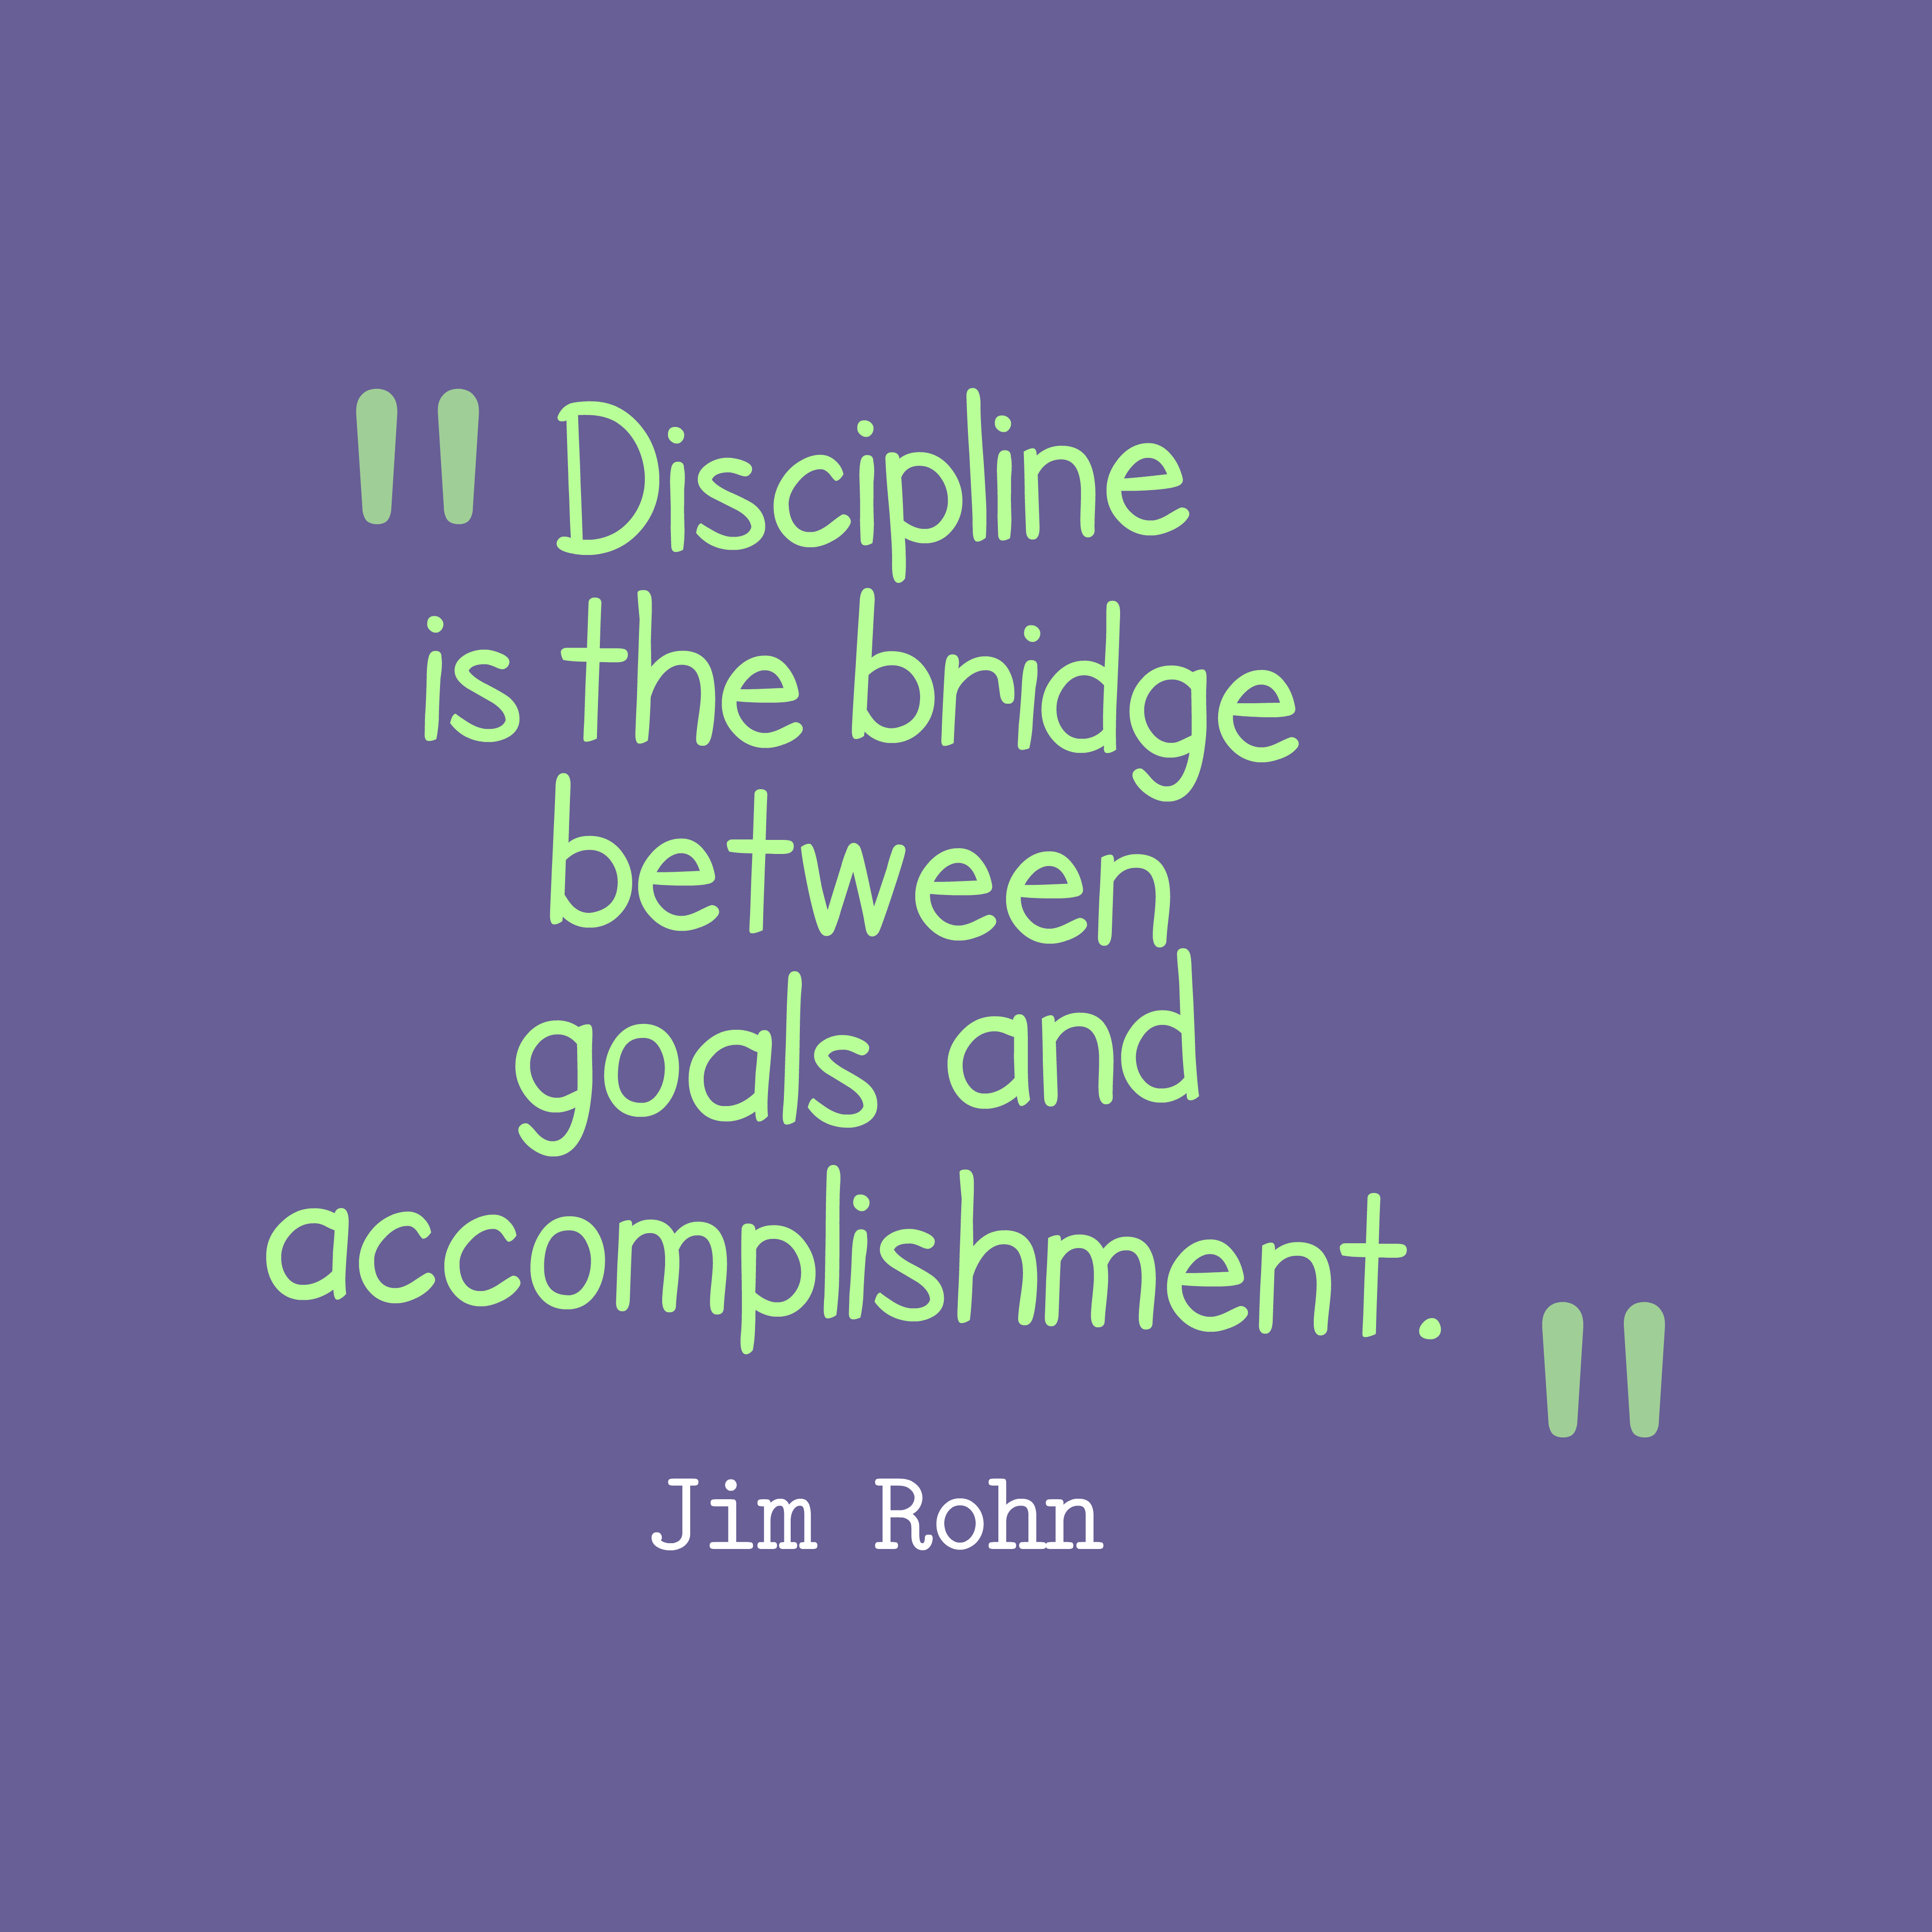 picture jim rohn quote about discipline. Black Bedroom Furniture Sets. Home Design Ideas